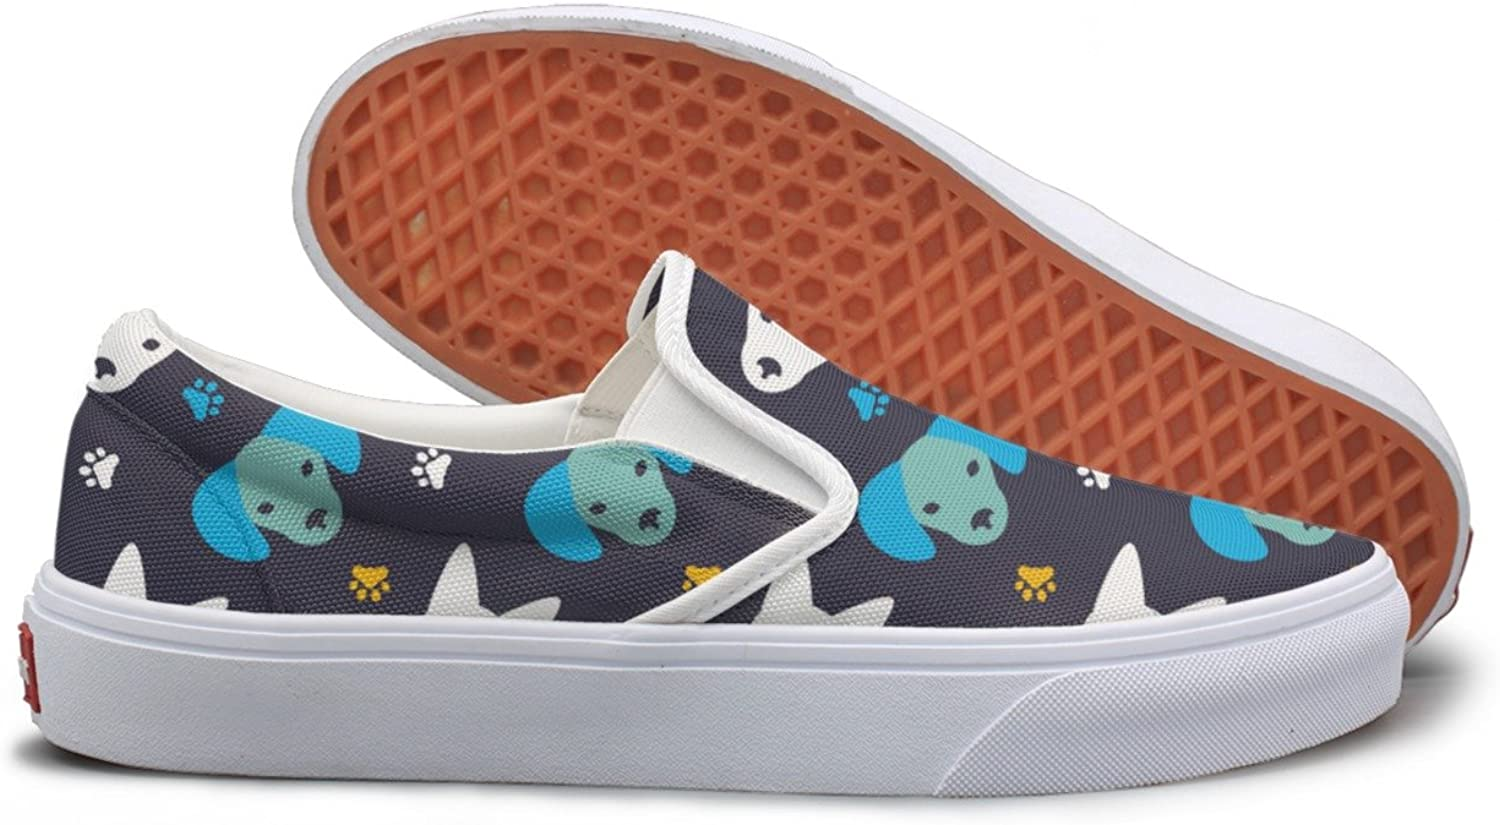 Bright Faces Of Dogs Vector Image Lightweight Sneakers For Women